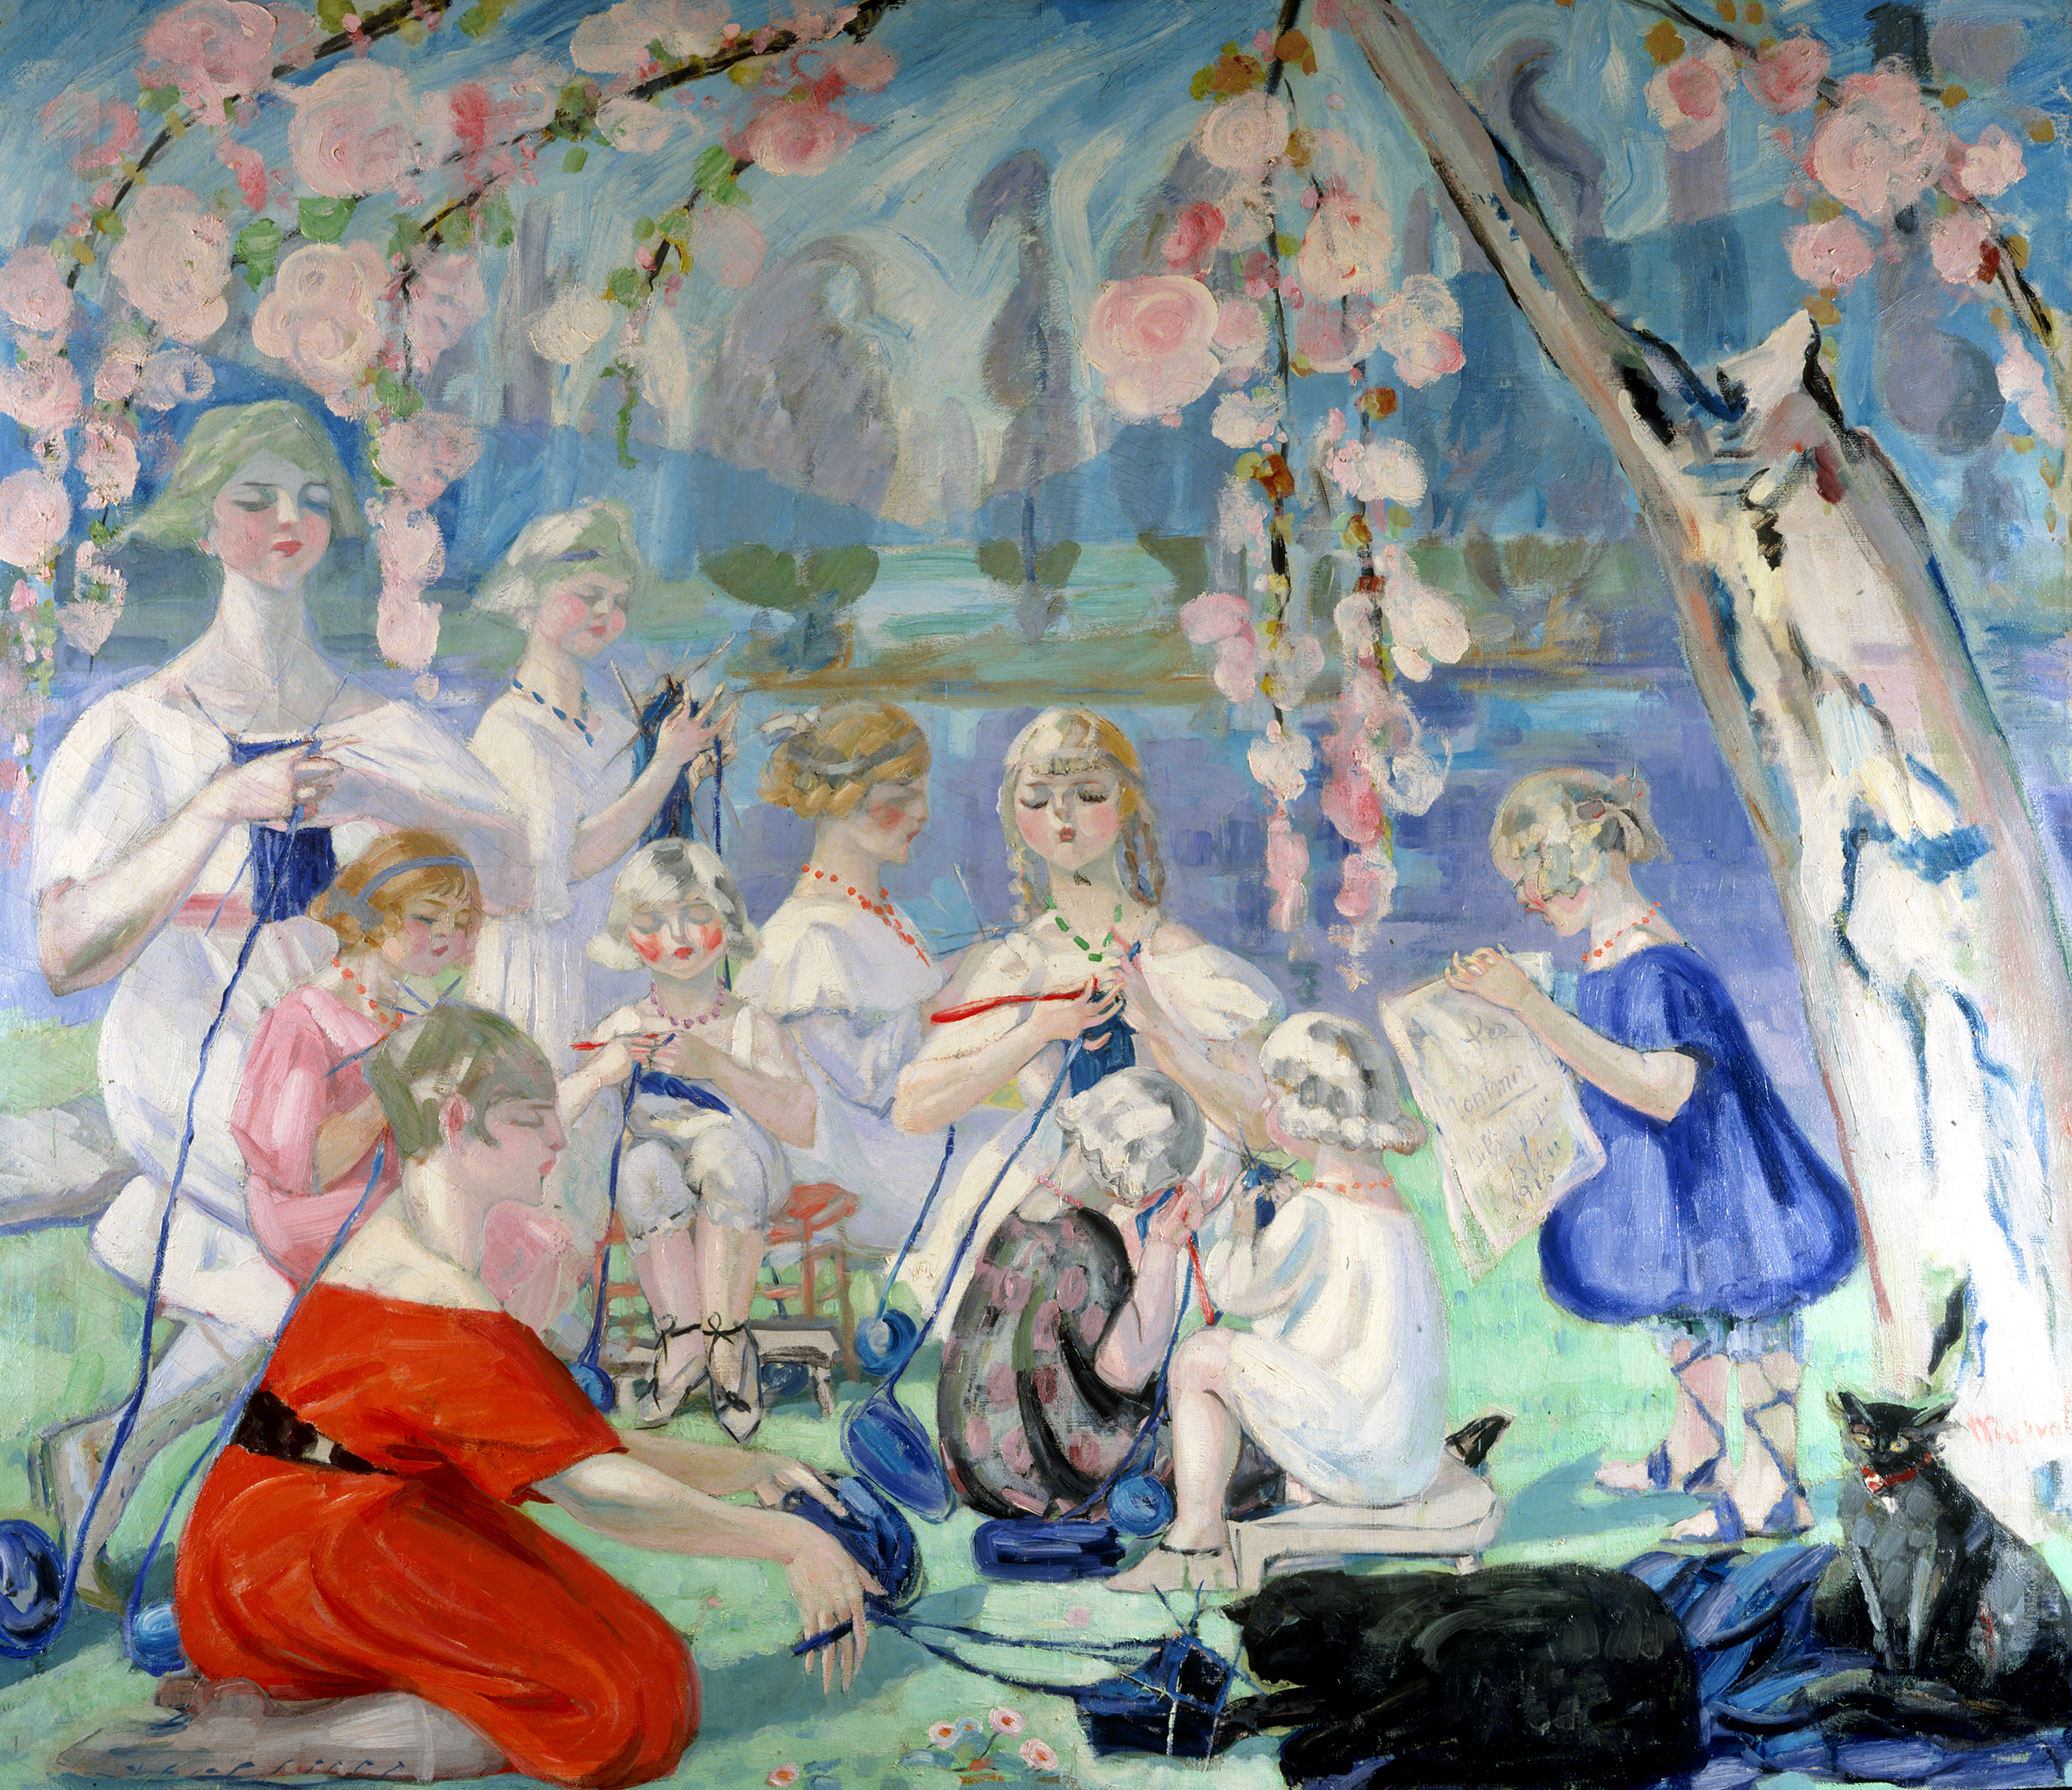 Les Tricoteuses, Jacqueline Marval, 1915. Oil on canvas, 210 x 242 cm. Private collection, Paris.